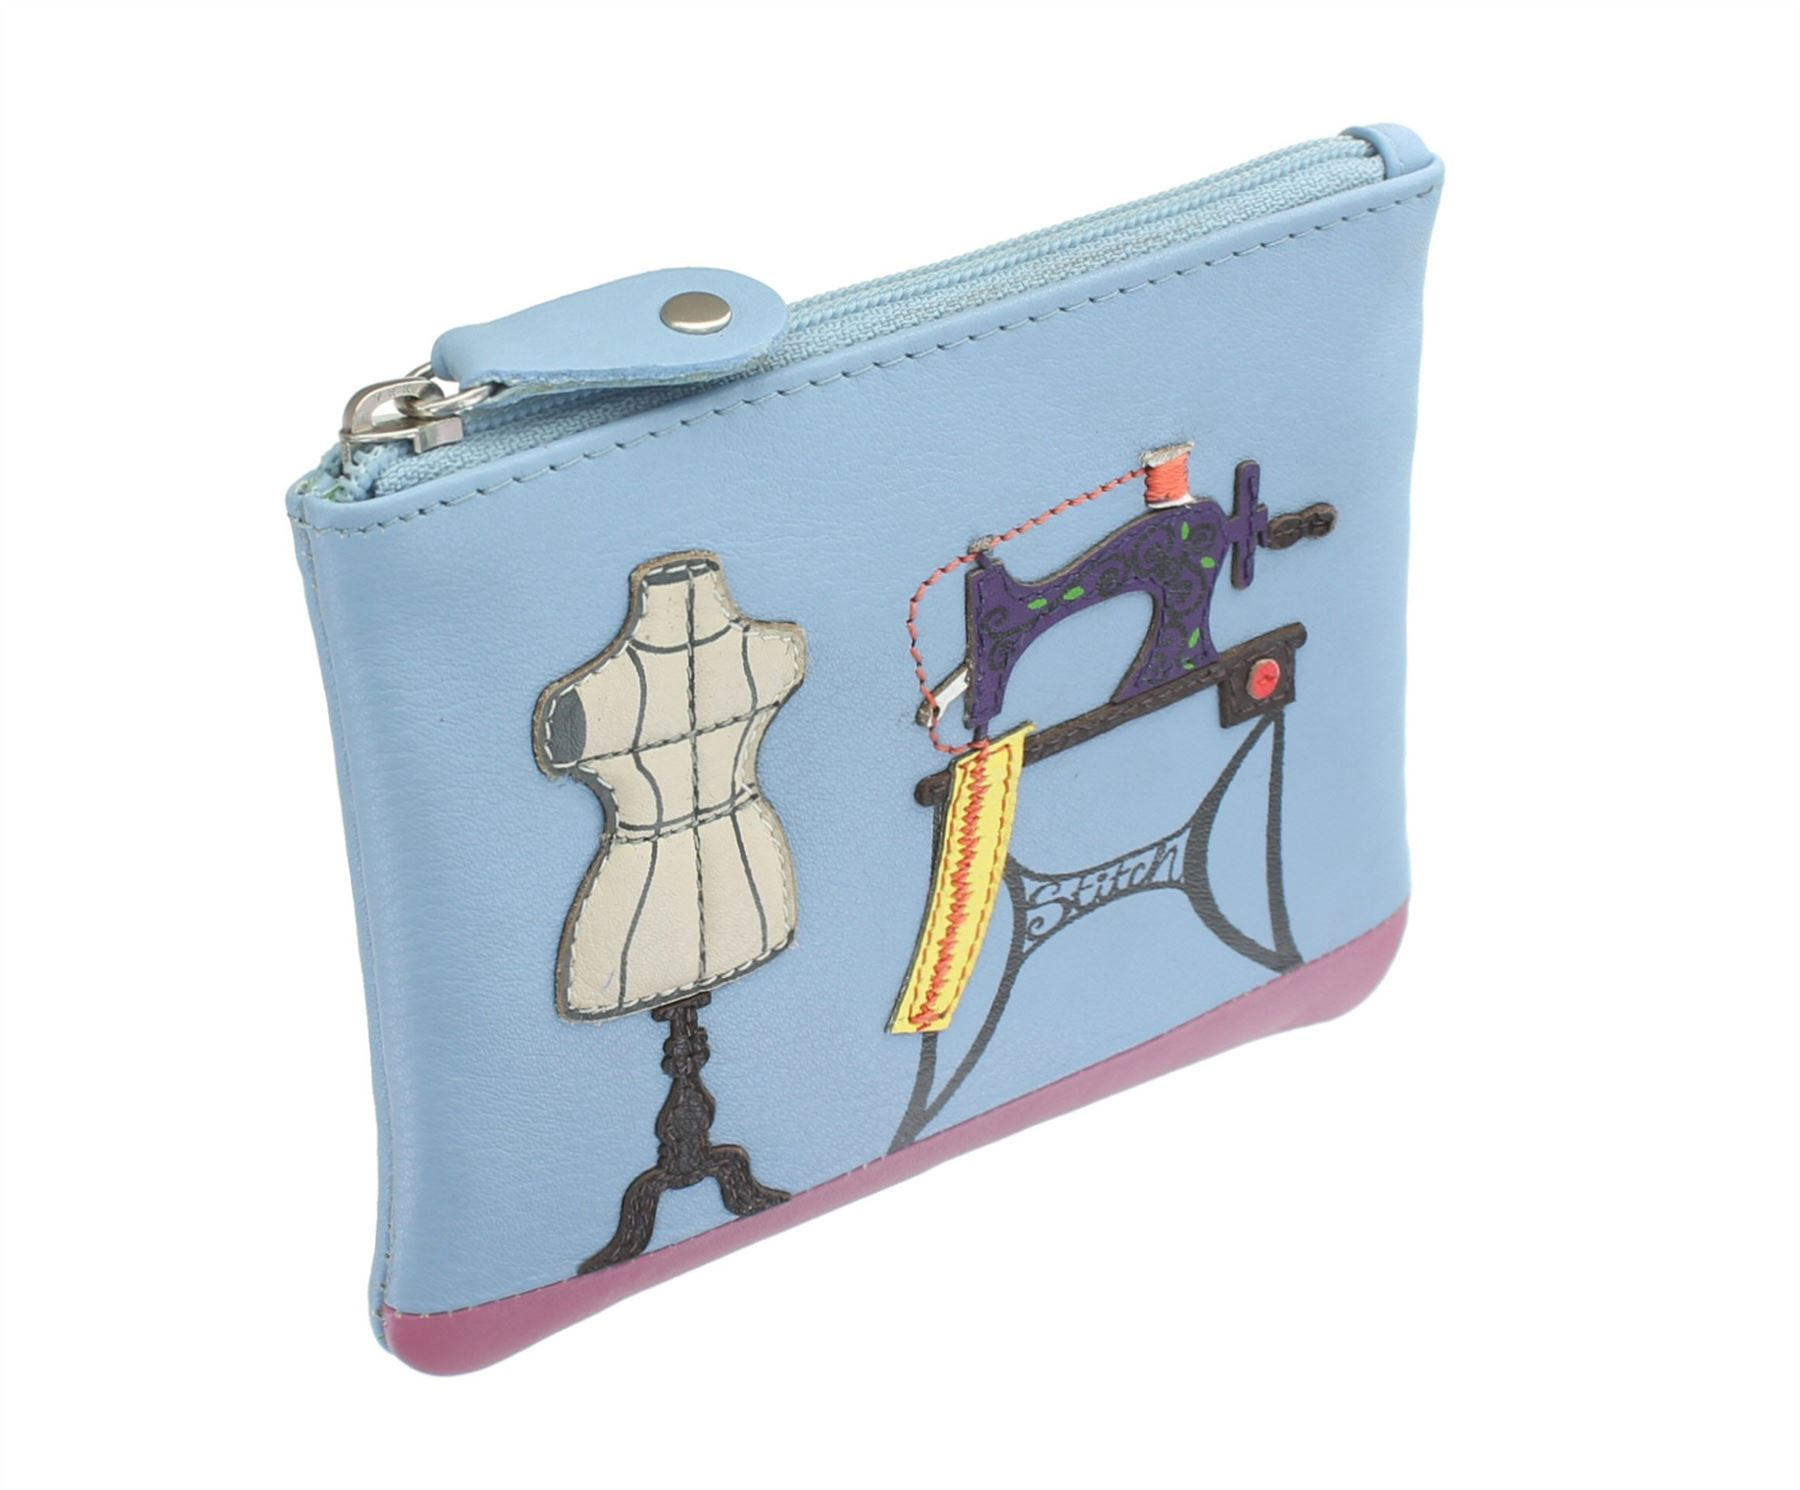 MALA LEATHER SEWING Room Collection Cuir Porte-monnaie 4194 /_ 22